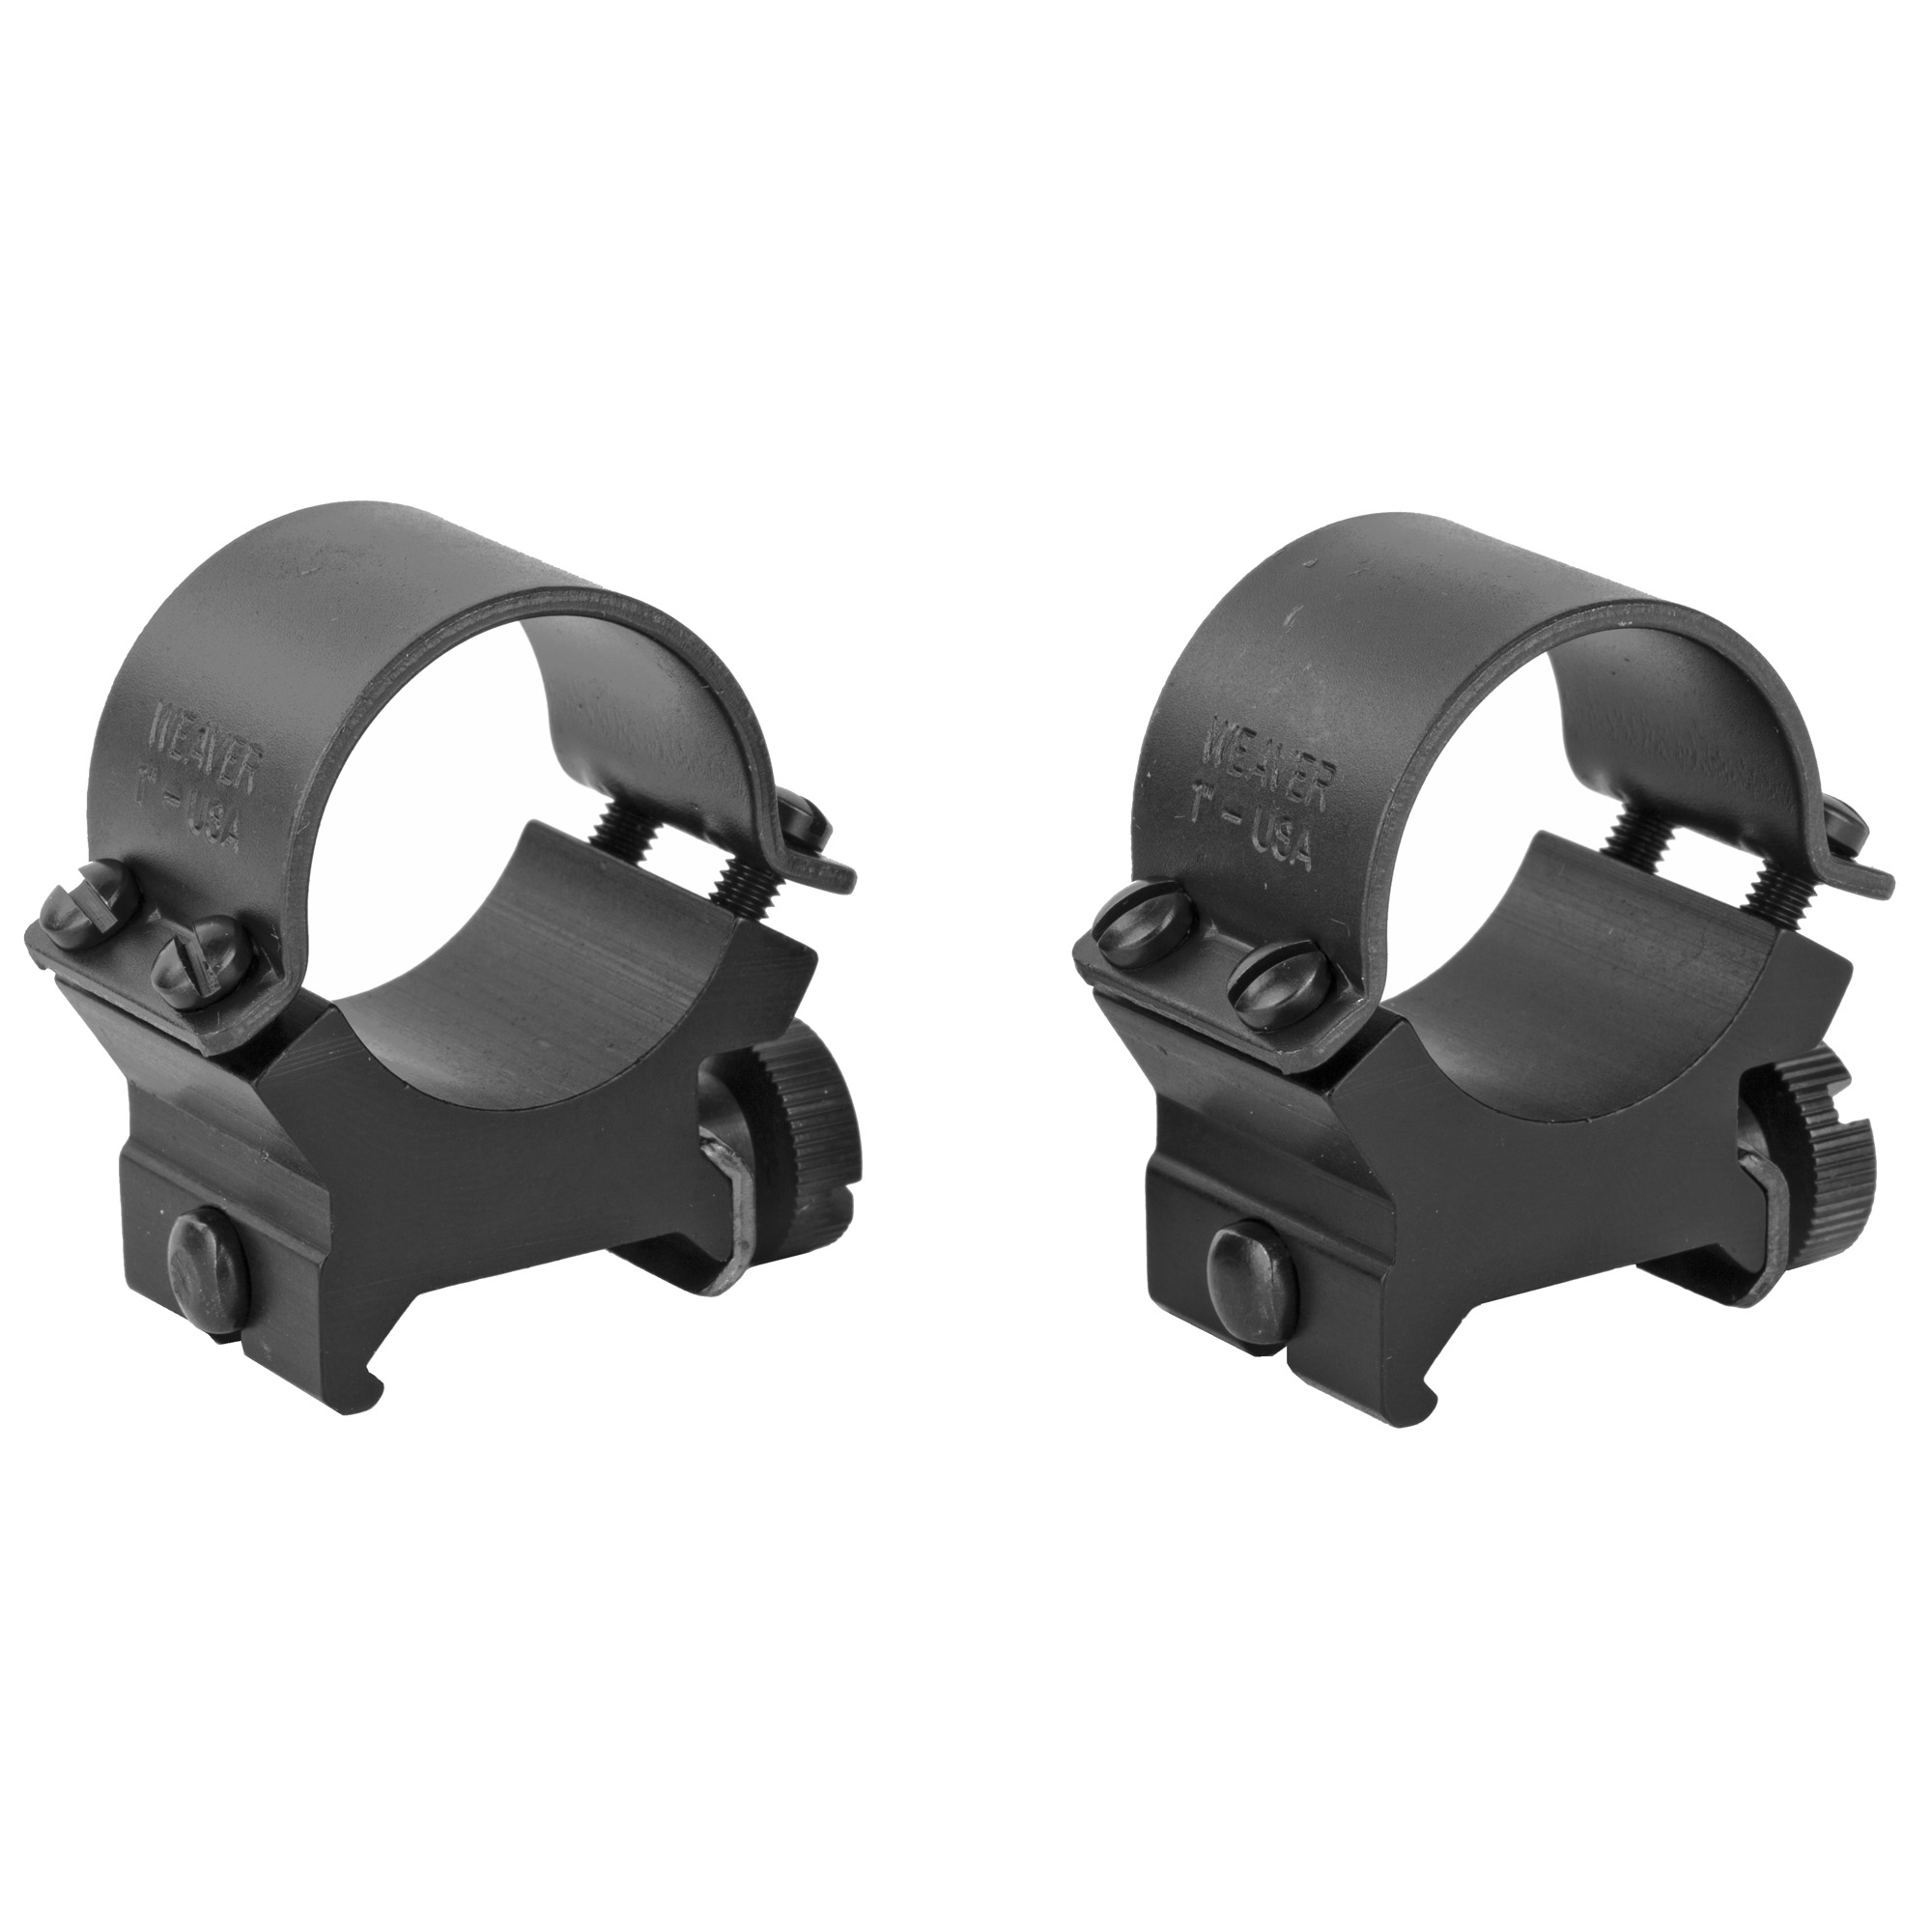 """These rings use a four-screw system"""" and have steel caps and an aluminum saddle for added strength. Also features the quick detach system"""" allowing you to loosen the thumb screws and go to iron sights in seconds."""